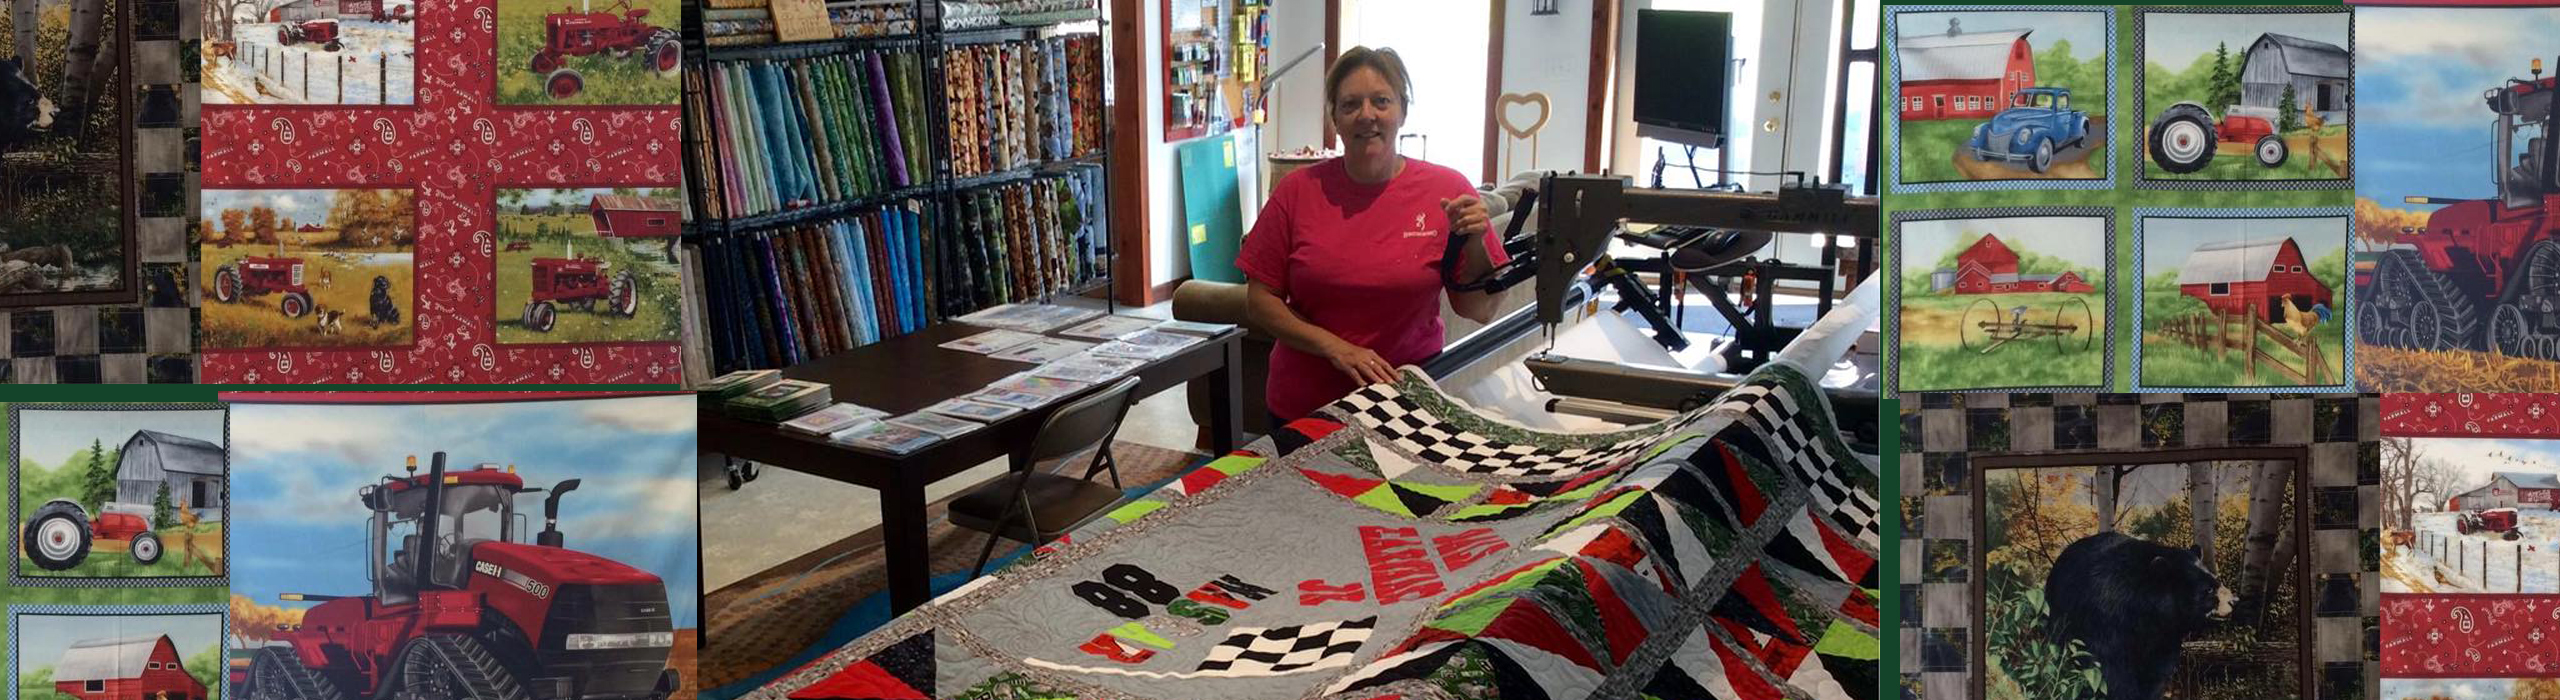 Majestic Touch Quilt Shop